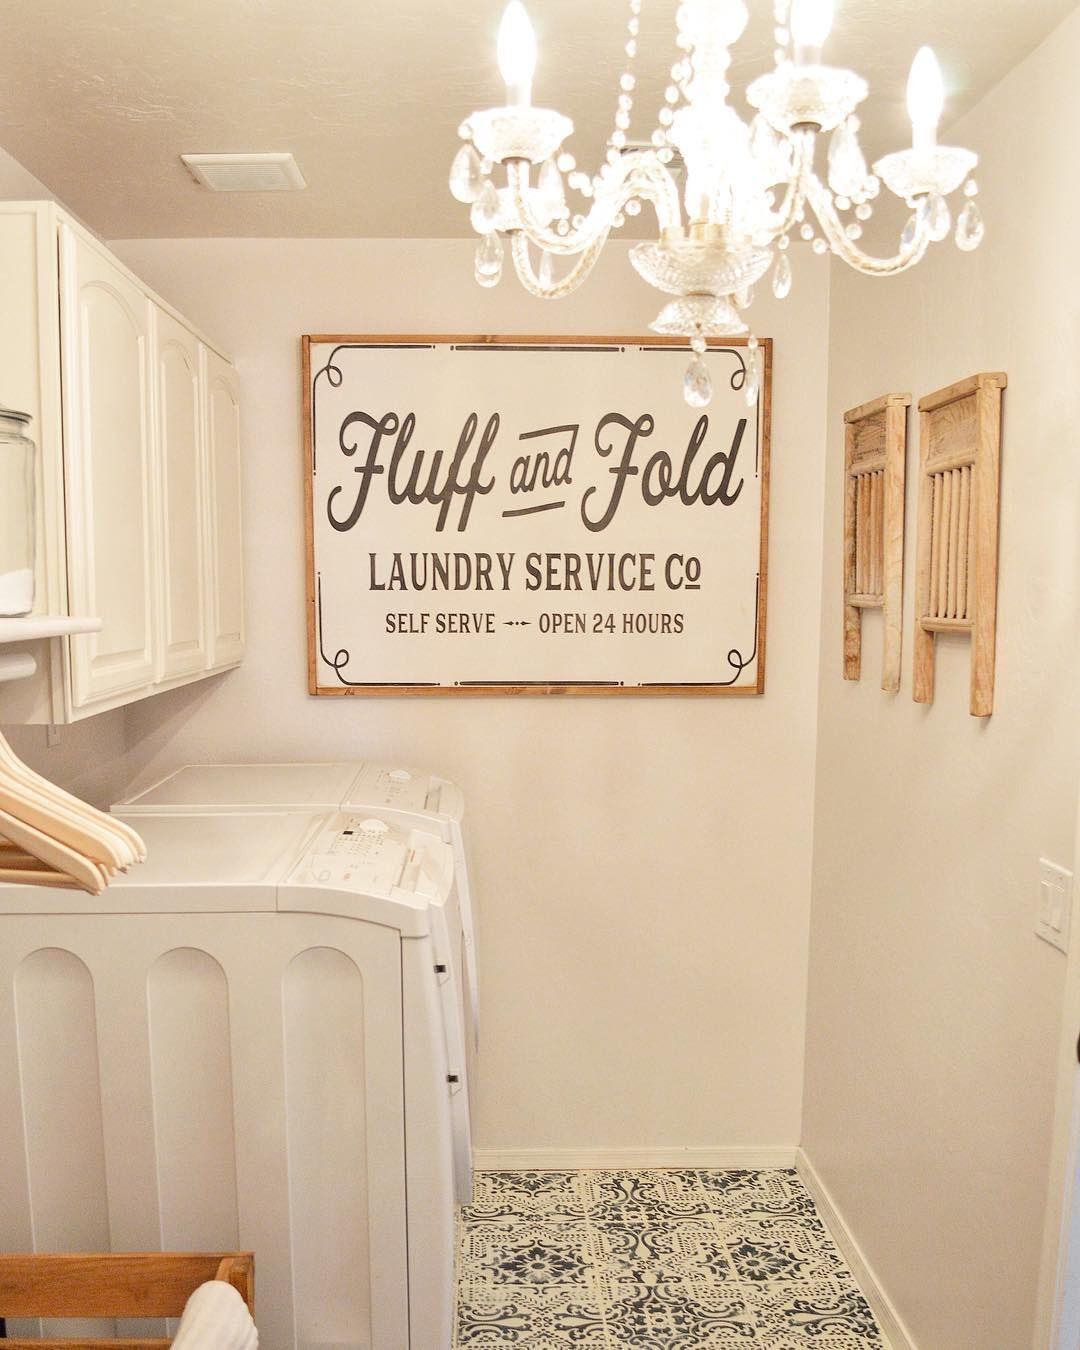 4 921 Likes 117 Comments Natalie Kolter Vintage Porch Vintageporch On Instagram Best Laundry Room Si Laundry Room Decor Laundry Room Signs Laundy Room